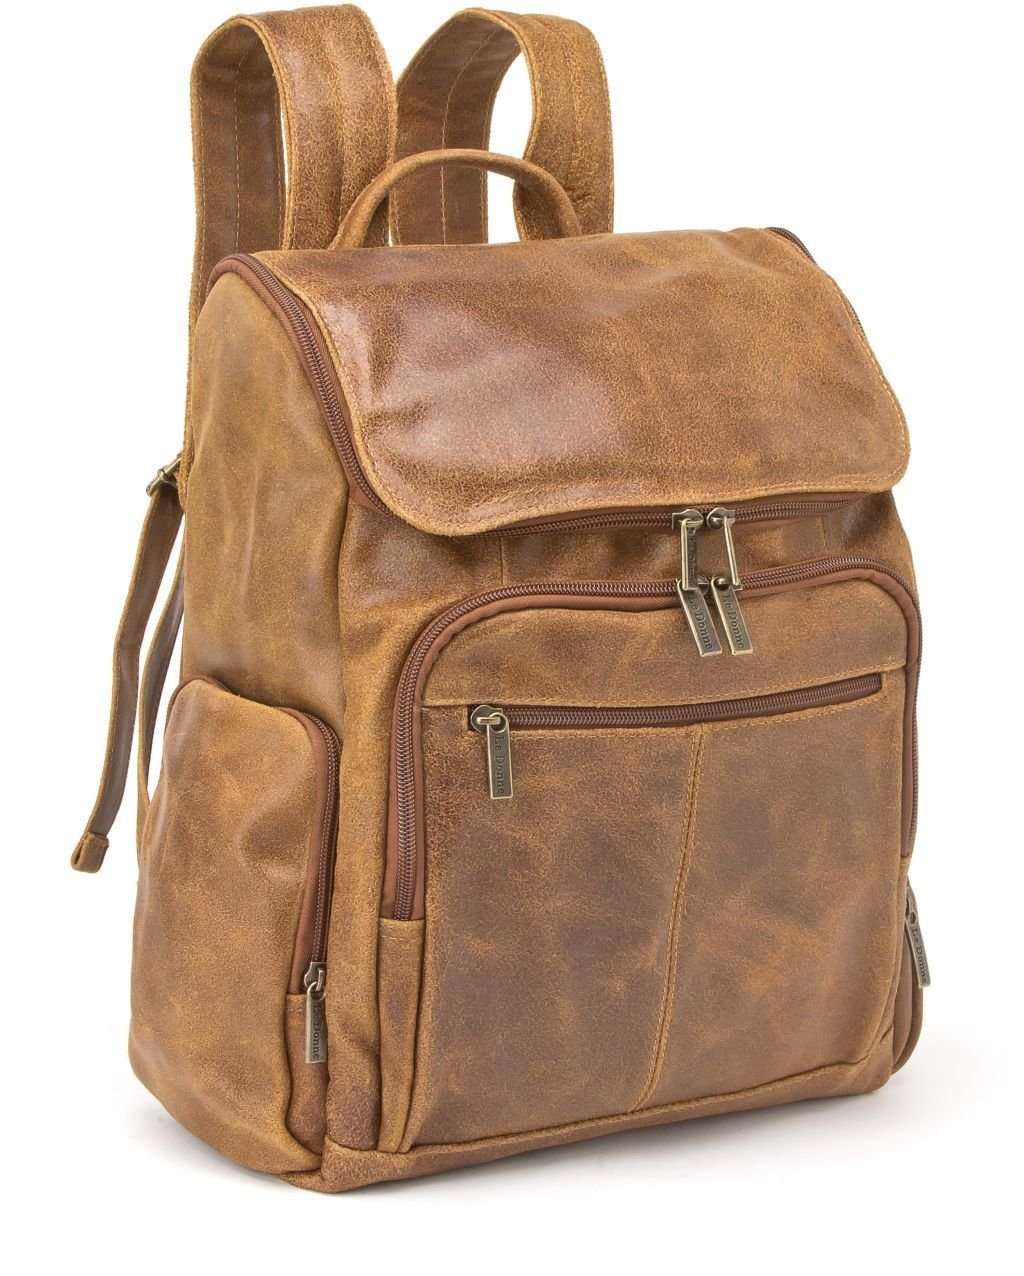 Le Donne Distressed Leather Laptop Backpack, 15.4'' Computer Bag in Tan by Le Donne